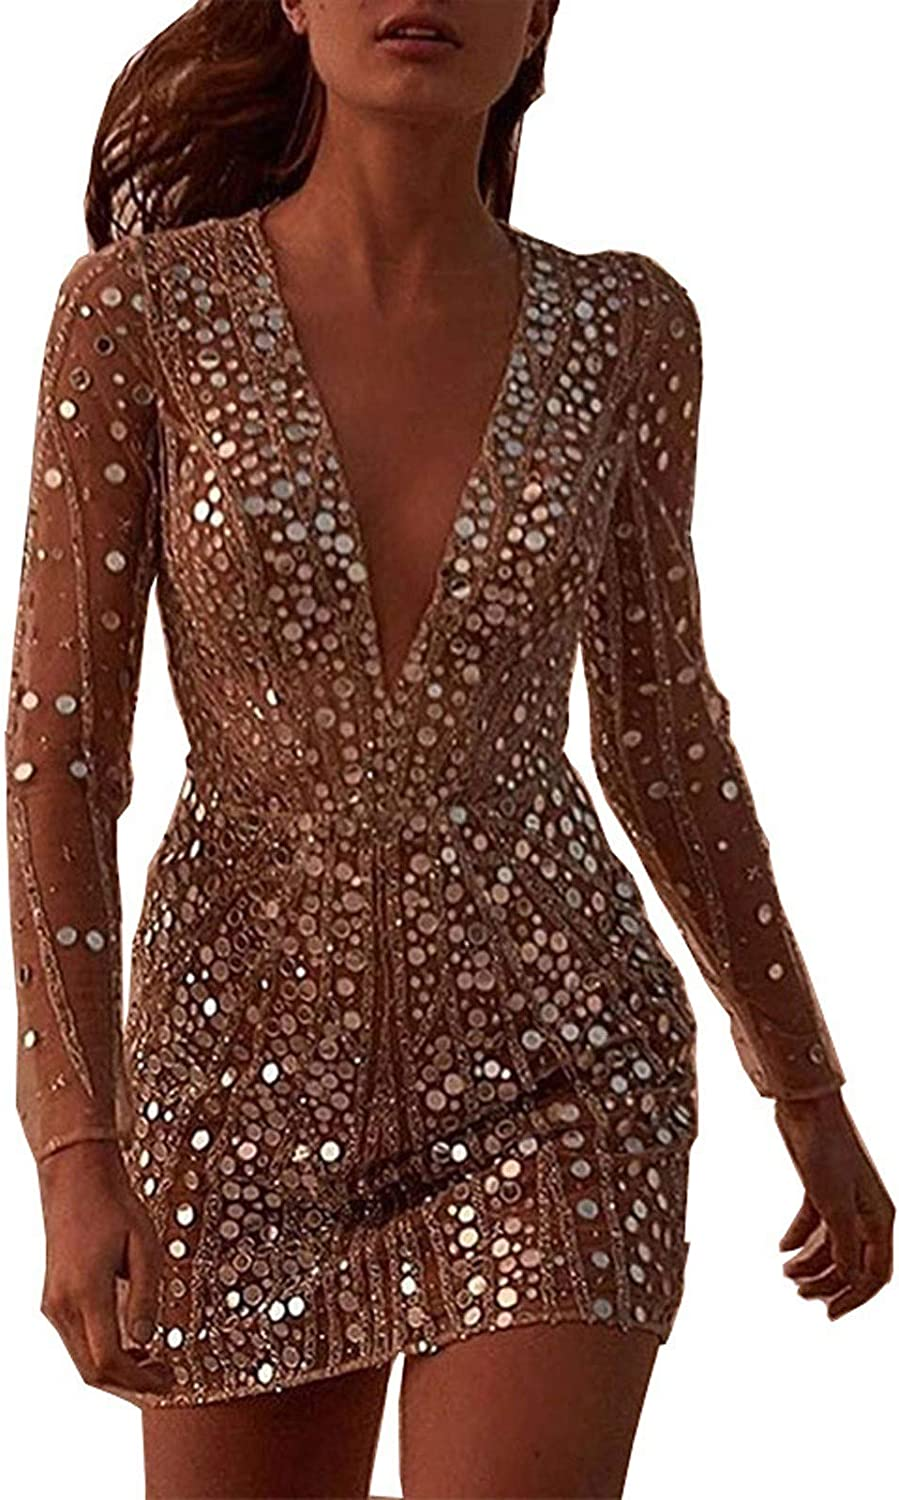 Kexle Womens Fashion Sexy Deep V Neck Metallic Glitter Ruched Long Sleeve Party Dress wrap Buttocks Dress